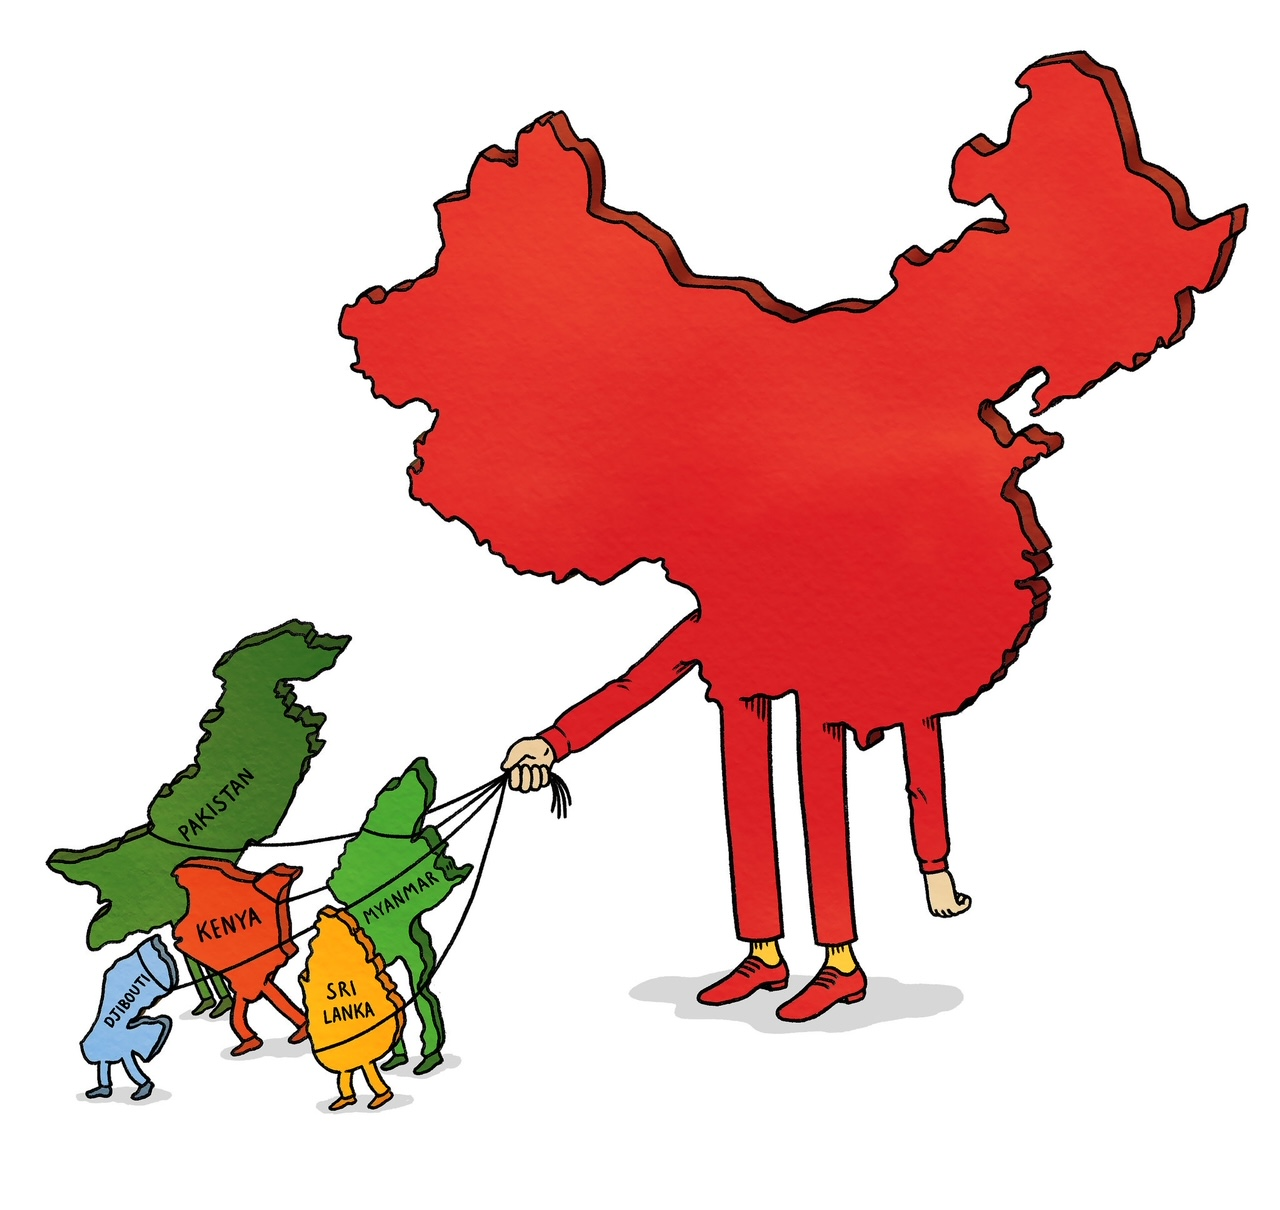 belt-and-roads-trap-plan-china-trapped-42-countries-in-debt